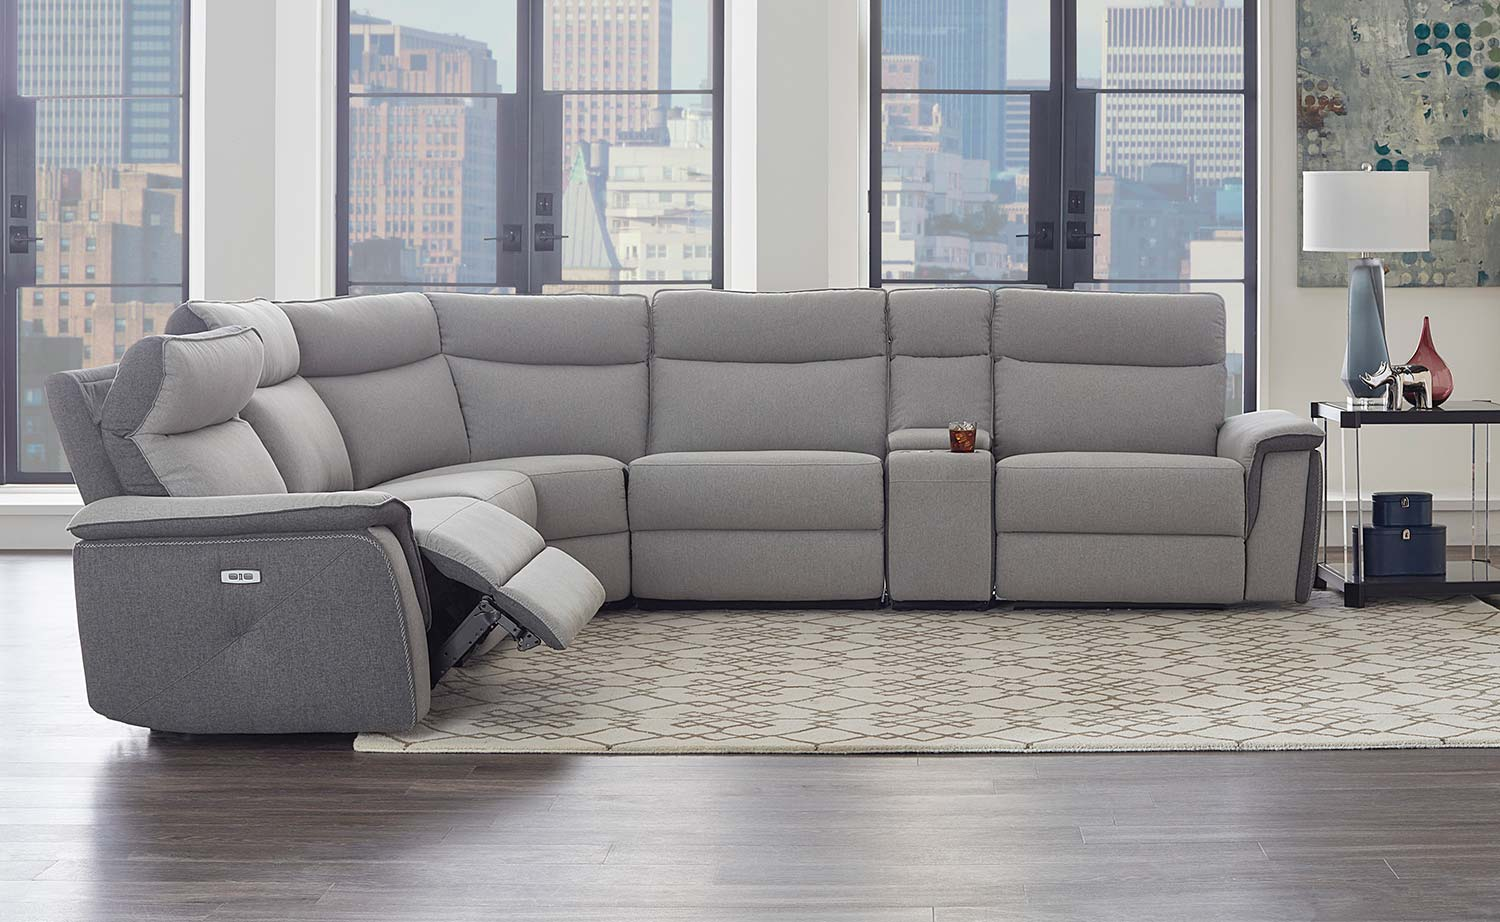 Homelegance Maroni Power Reclining Sectional Sofa Set - Grey